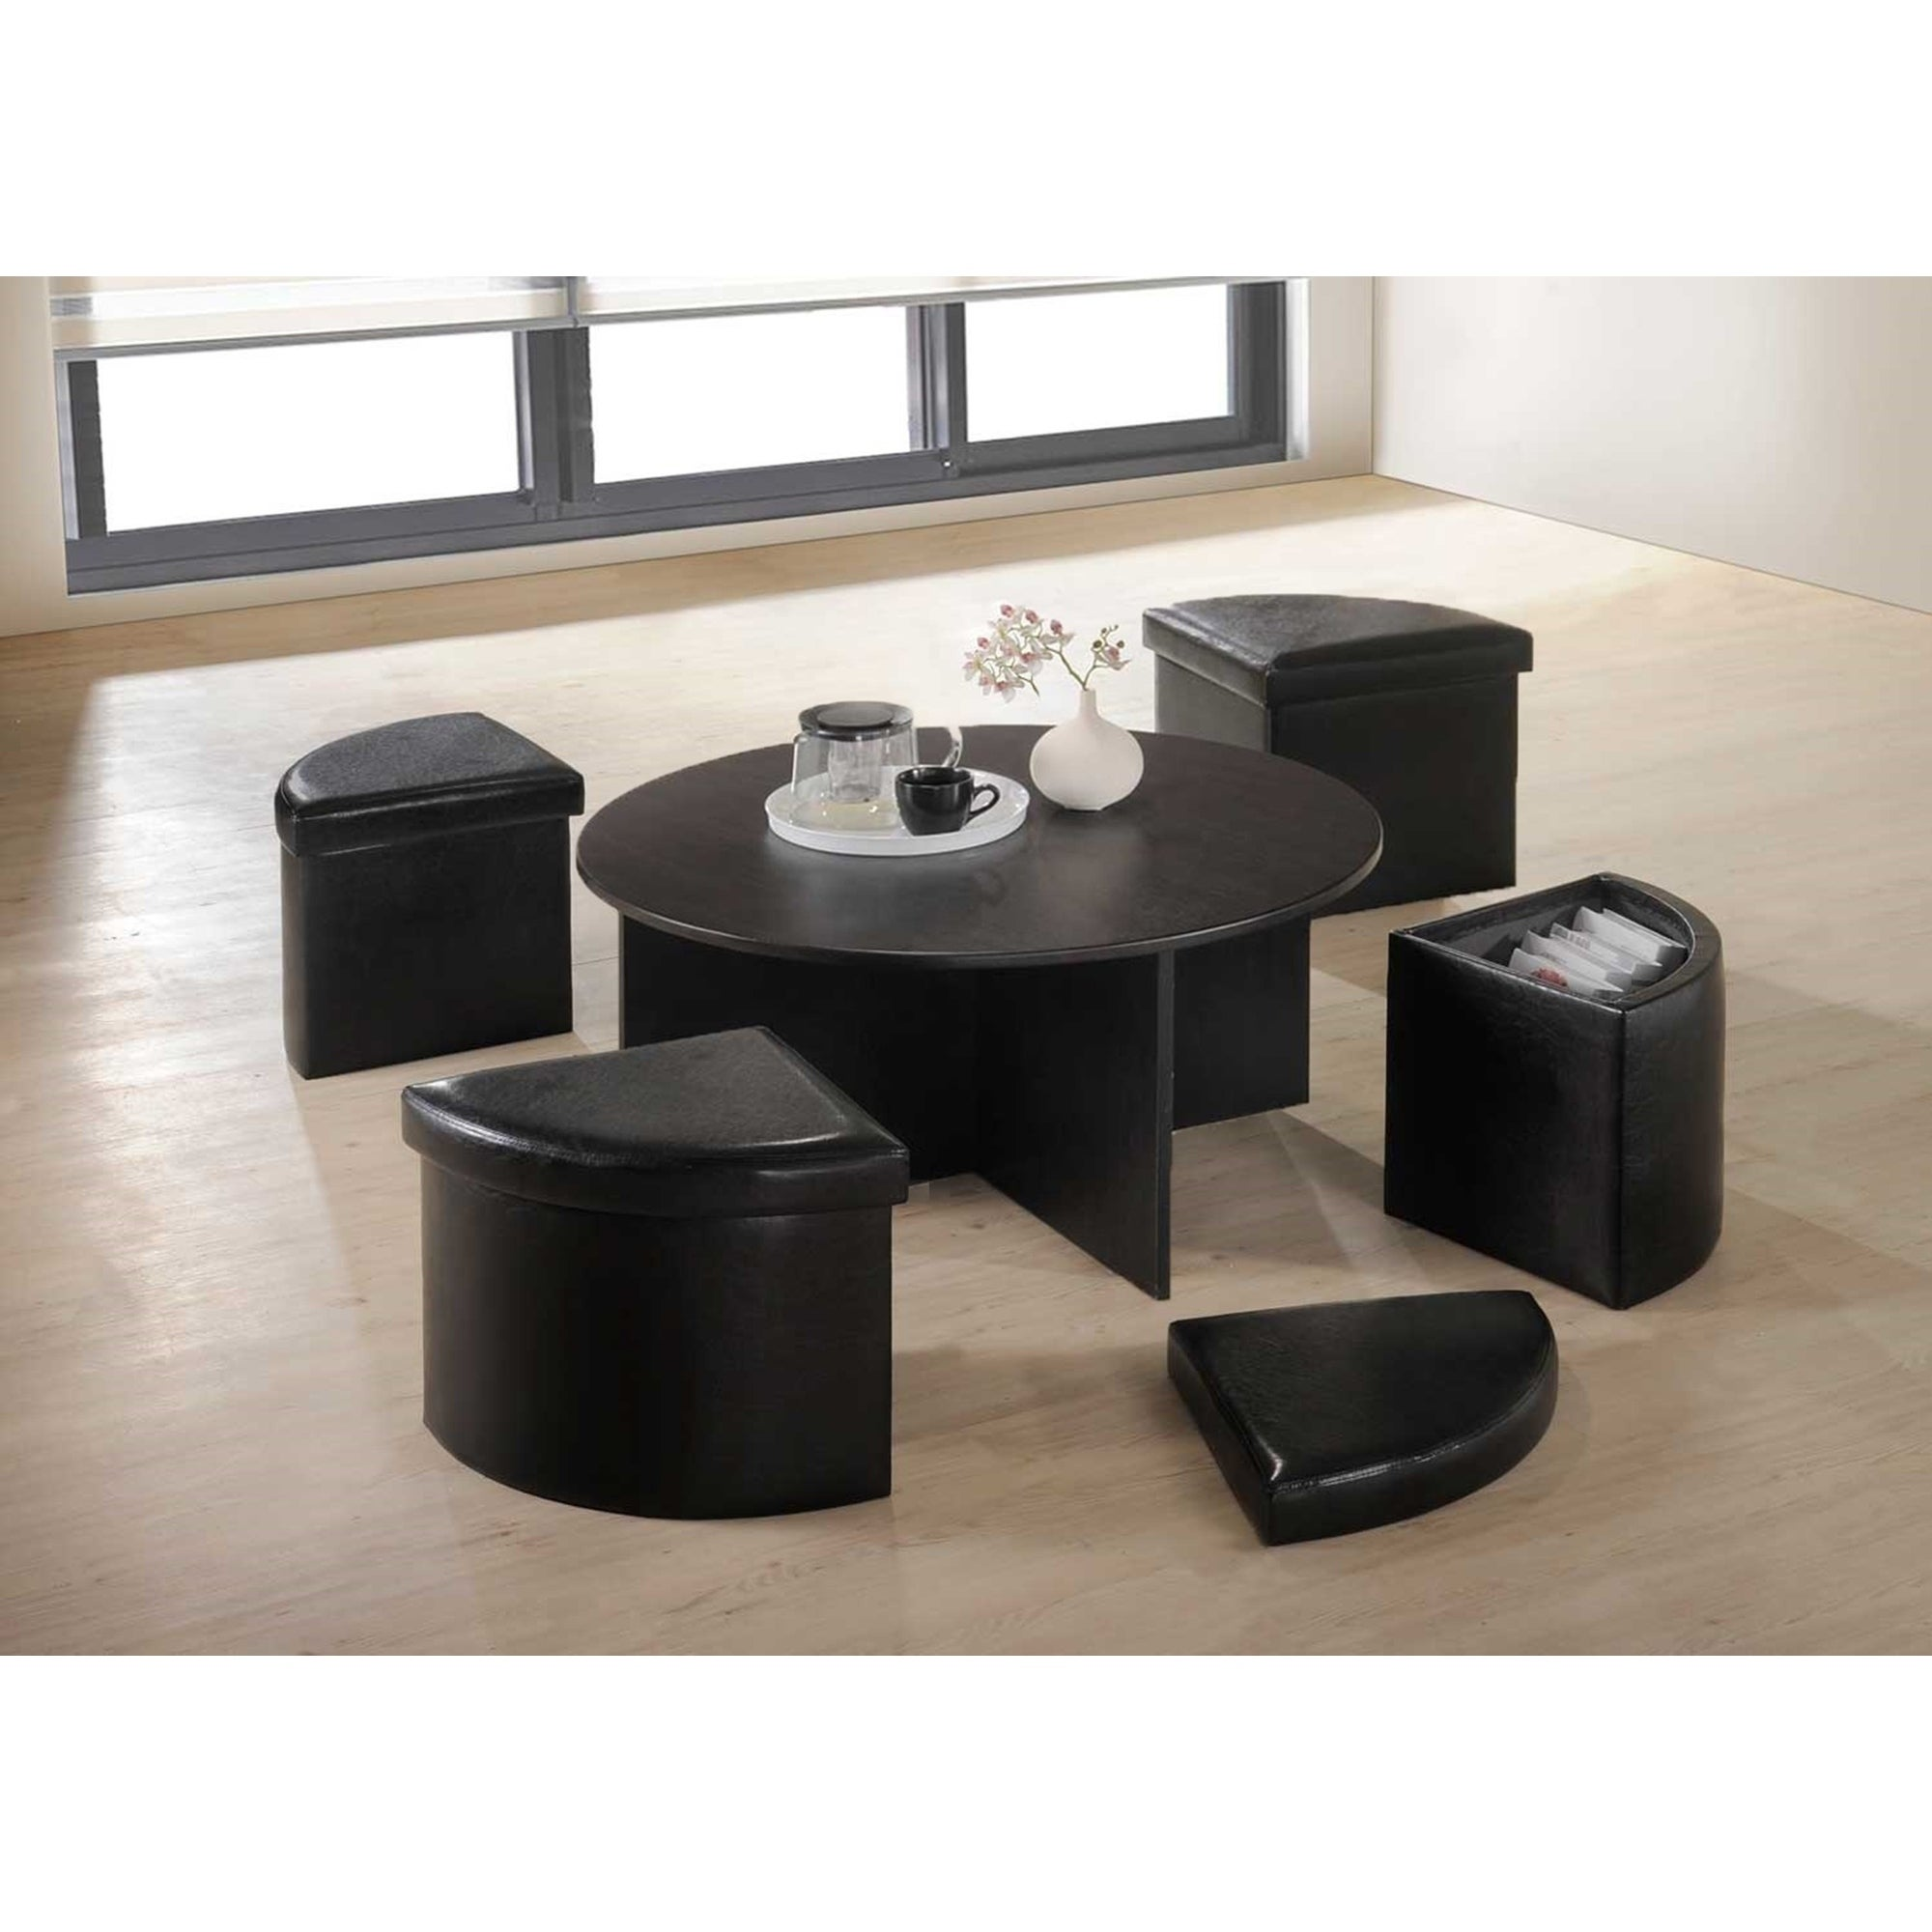 Black Faux Leather Wood 5 Piece Modern Storage Stool And Coffee Table Set